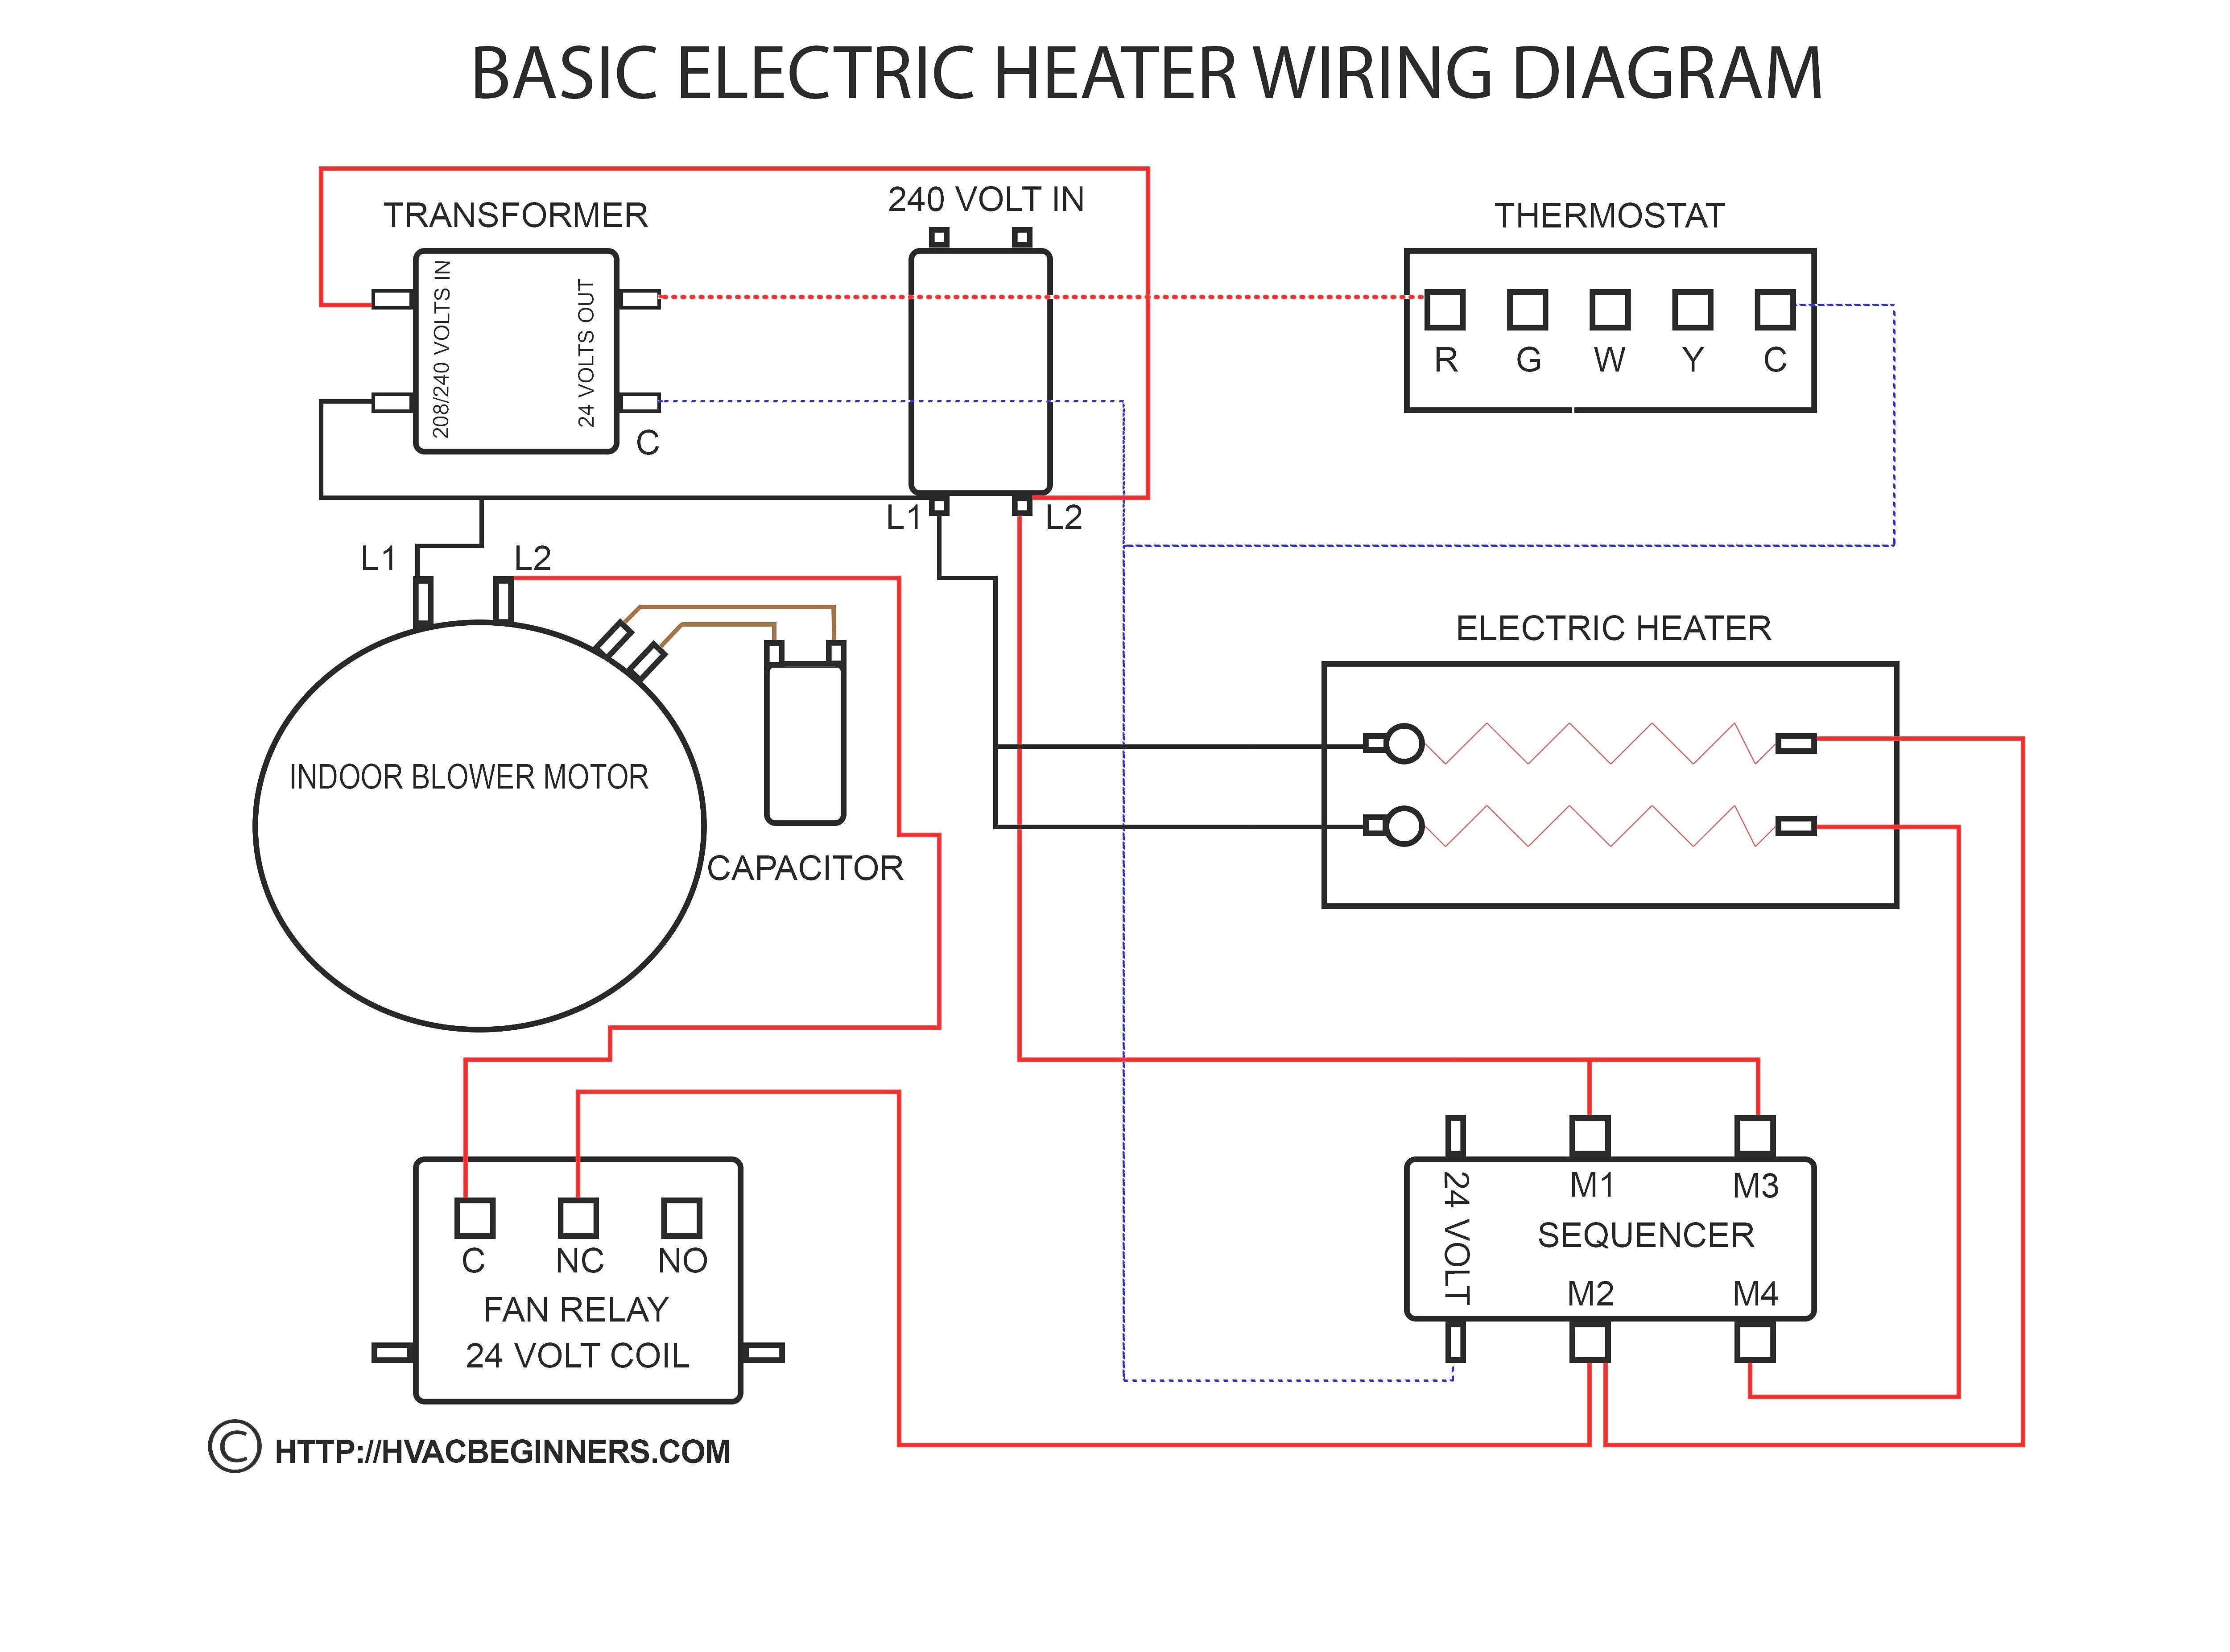 Unique Ac Wiring Color Diagram Wiringdiagram Diagramming Diagramm Visuals Visualisati Basic Electrical Wiring Thermostat Wiring Electrical Wiring Diagram